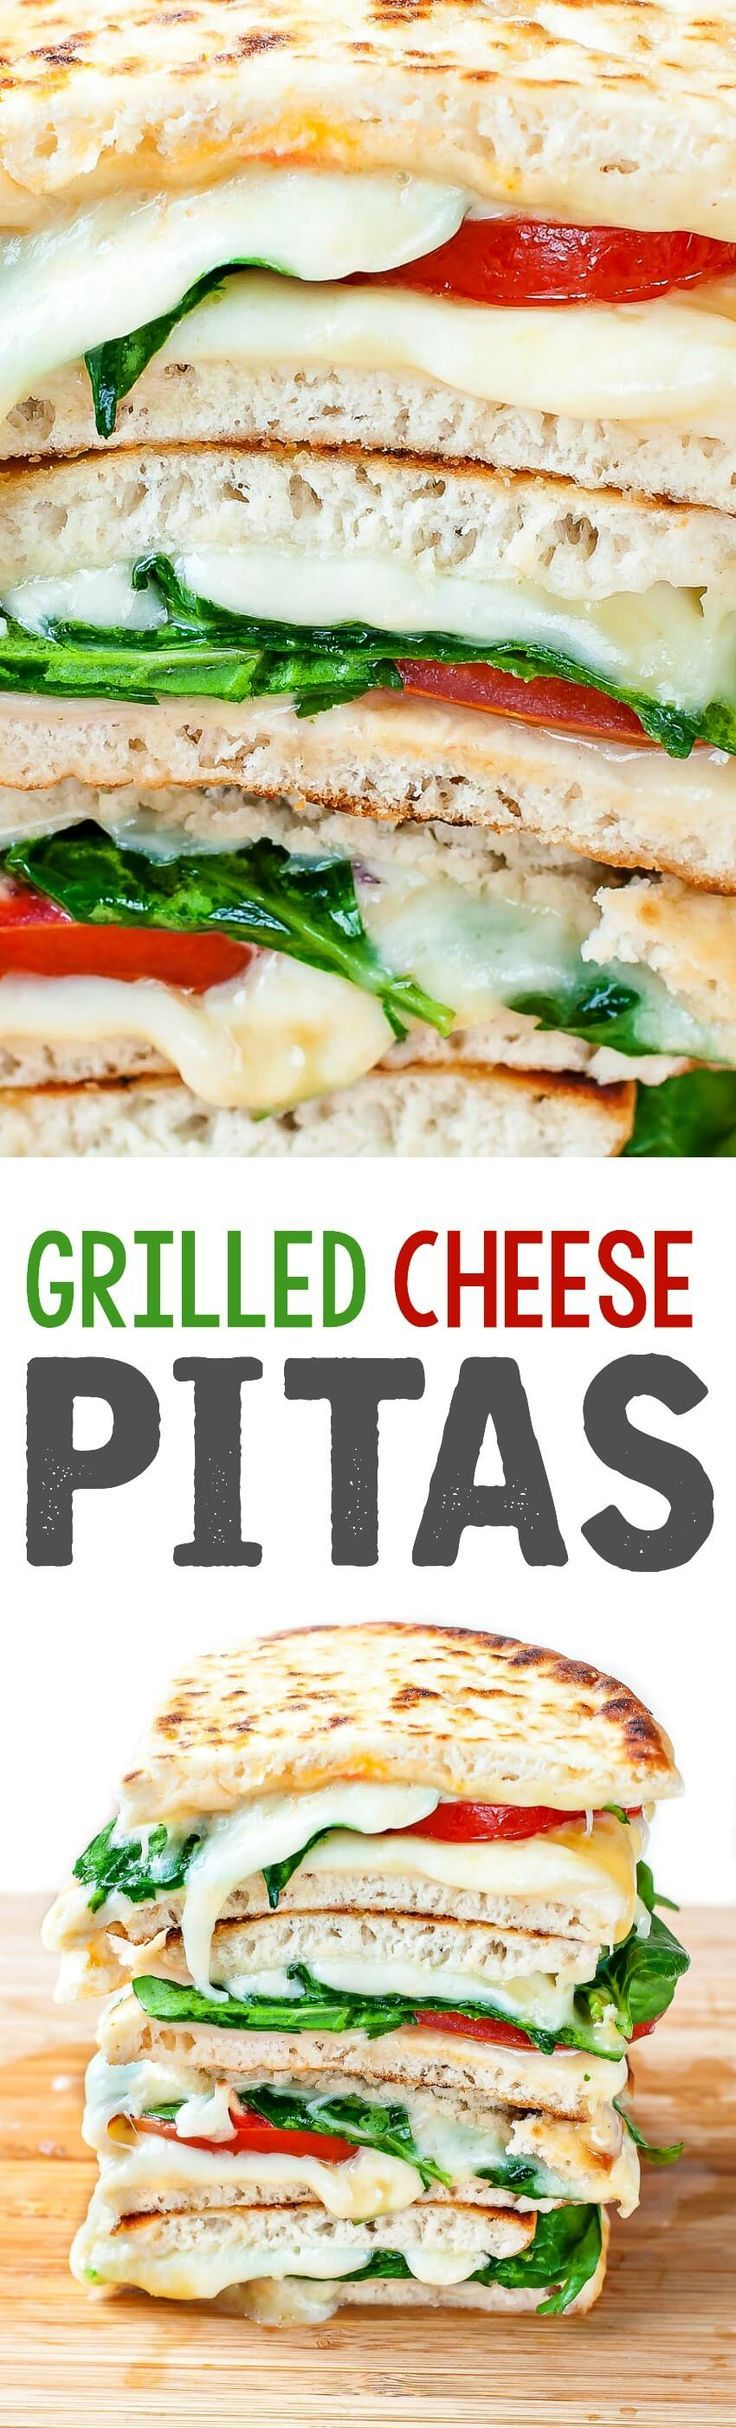 These Spinach and  Tomato Grilled Cheese Pitas jazz up the typical grilled cheese sandwich. Dunk them in your favorite soup or face-plant into them all on their own for a quick and easy lunch that's always a hit!